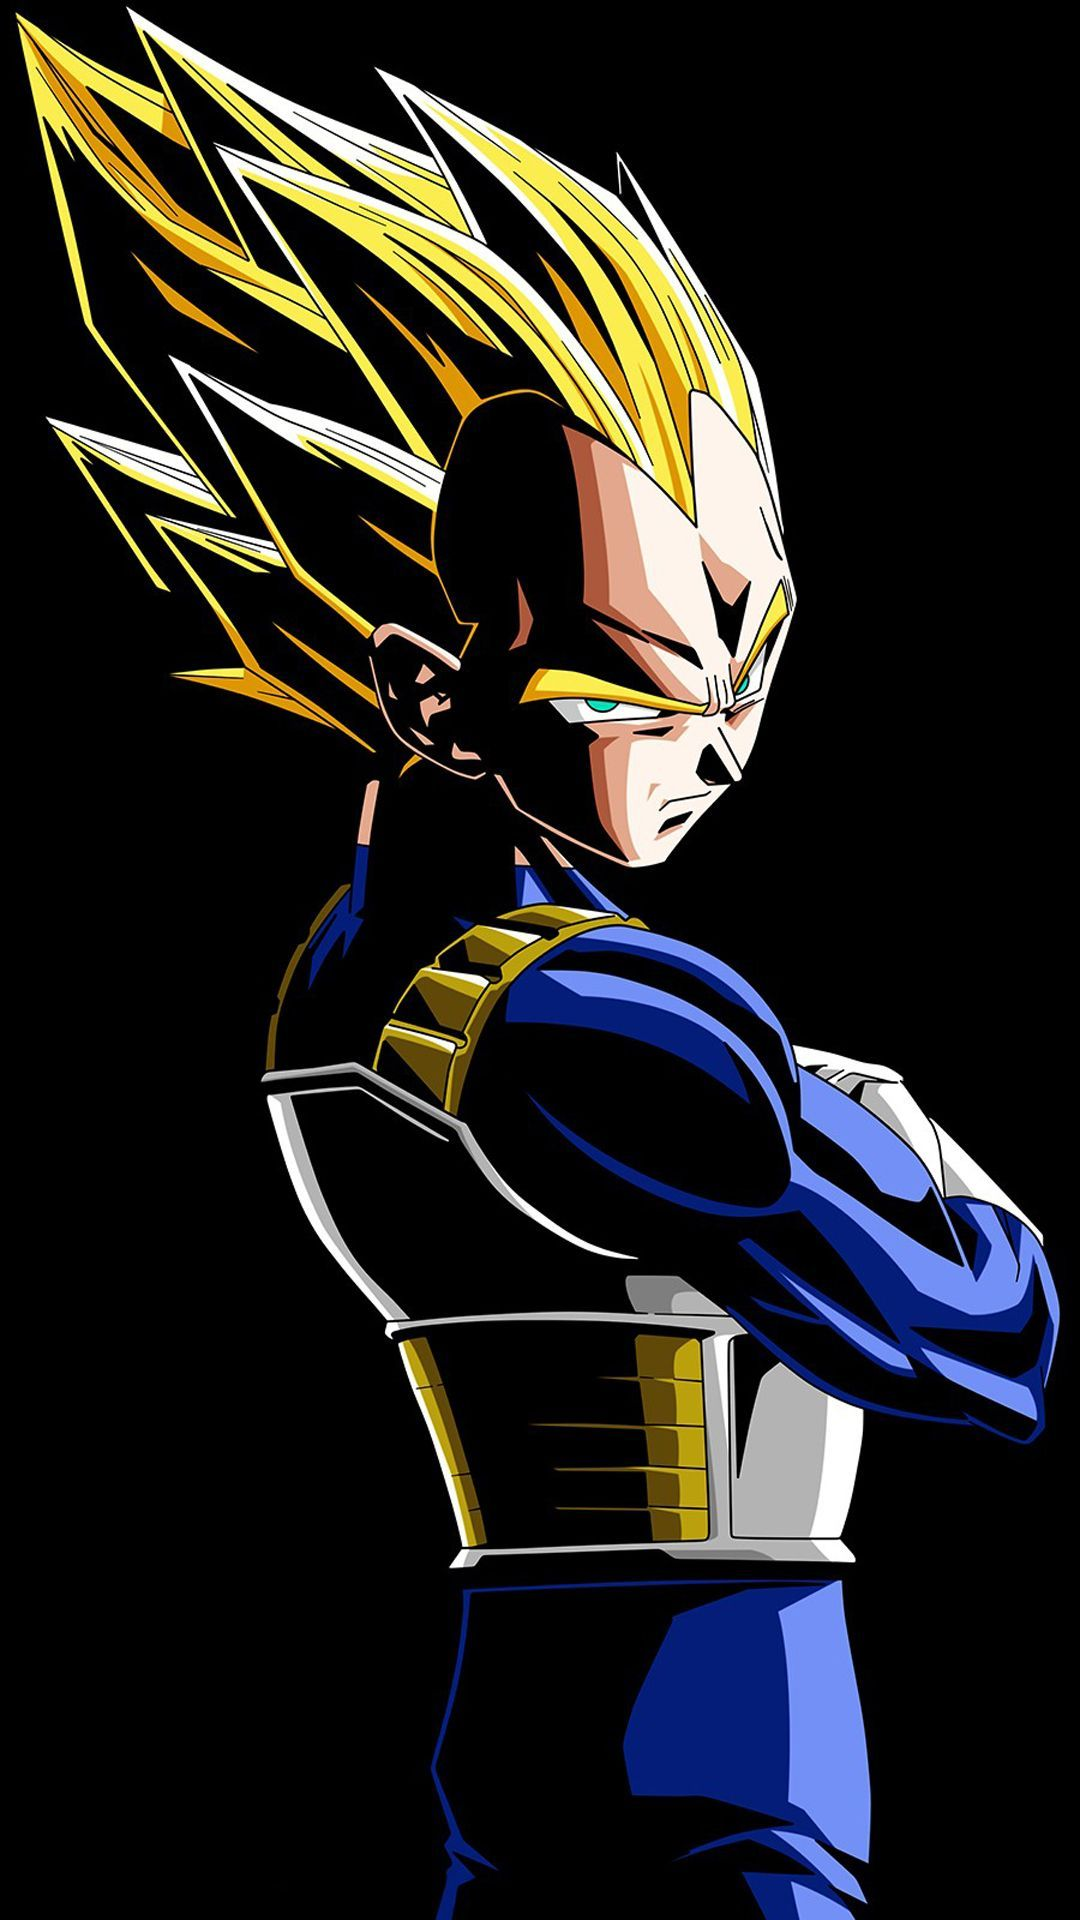 Vegeta   Dragon Ball Z Mobile Wallpaper 4053 1080x1920